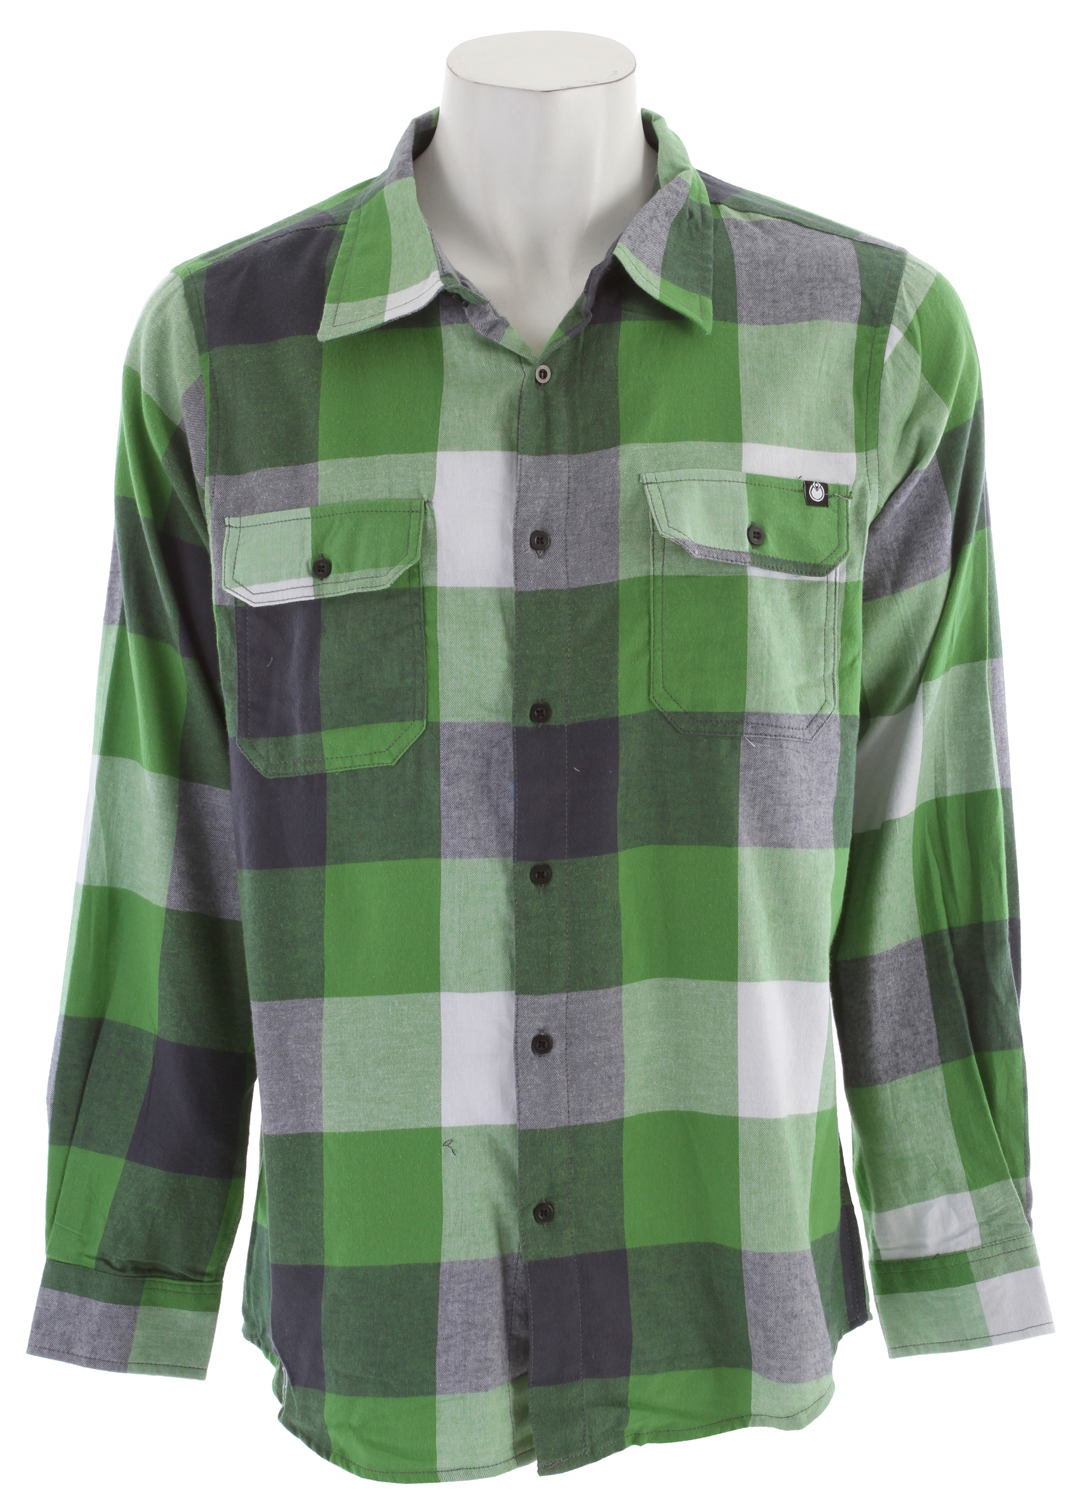 Key Features of the Nomis Box Plaid L/S Shirt: 100% Cotton Tall sizing - $54.95